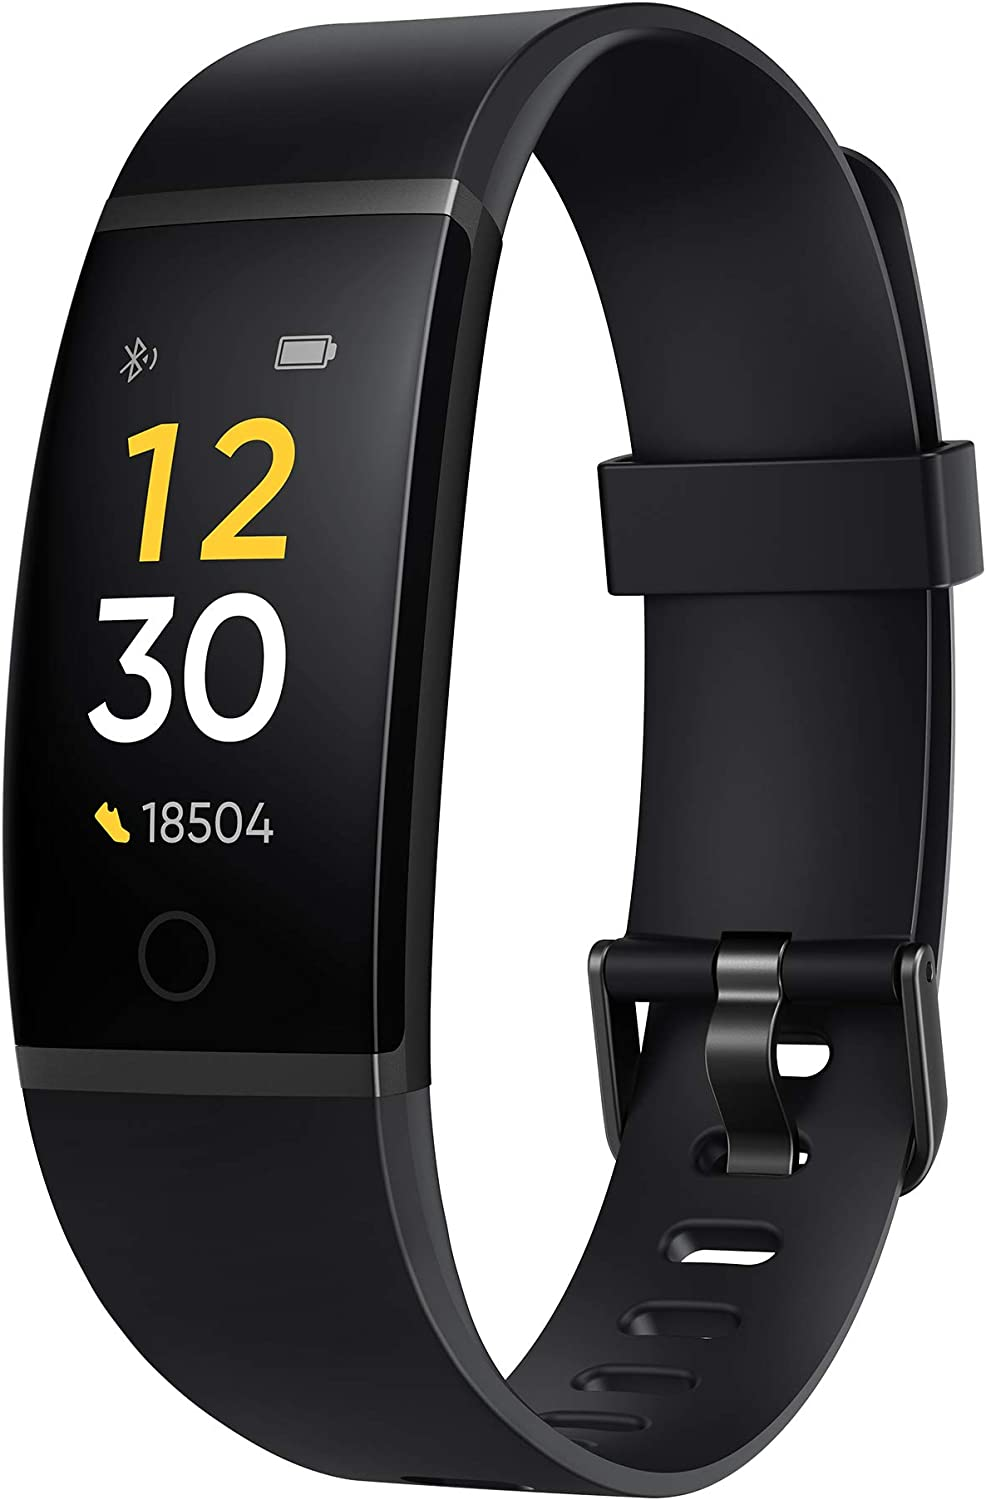 realme fitness band under 5000